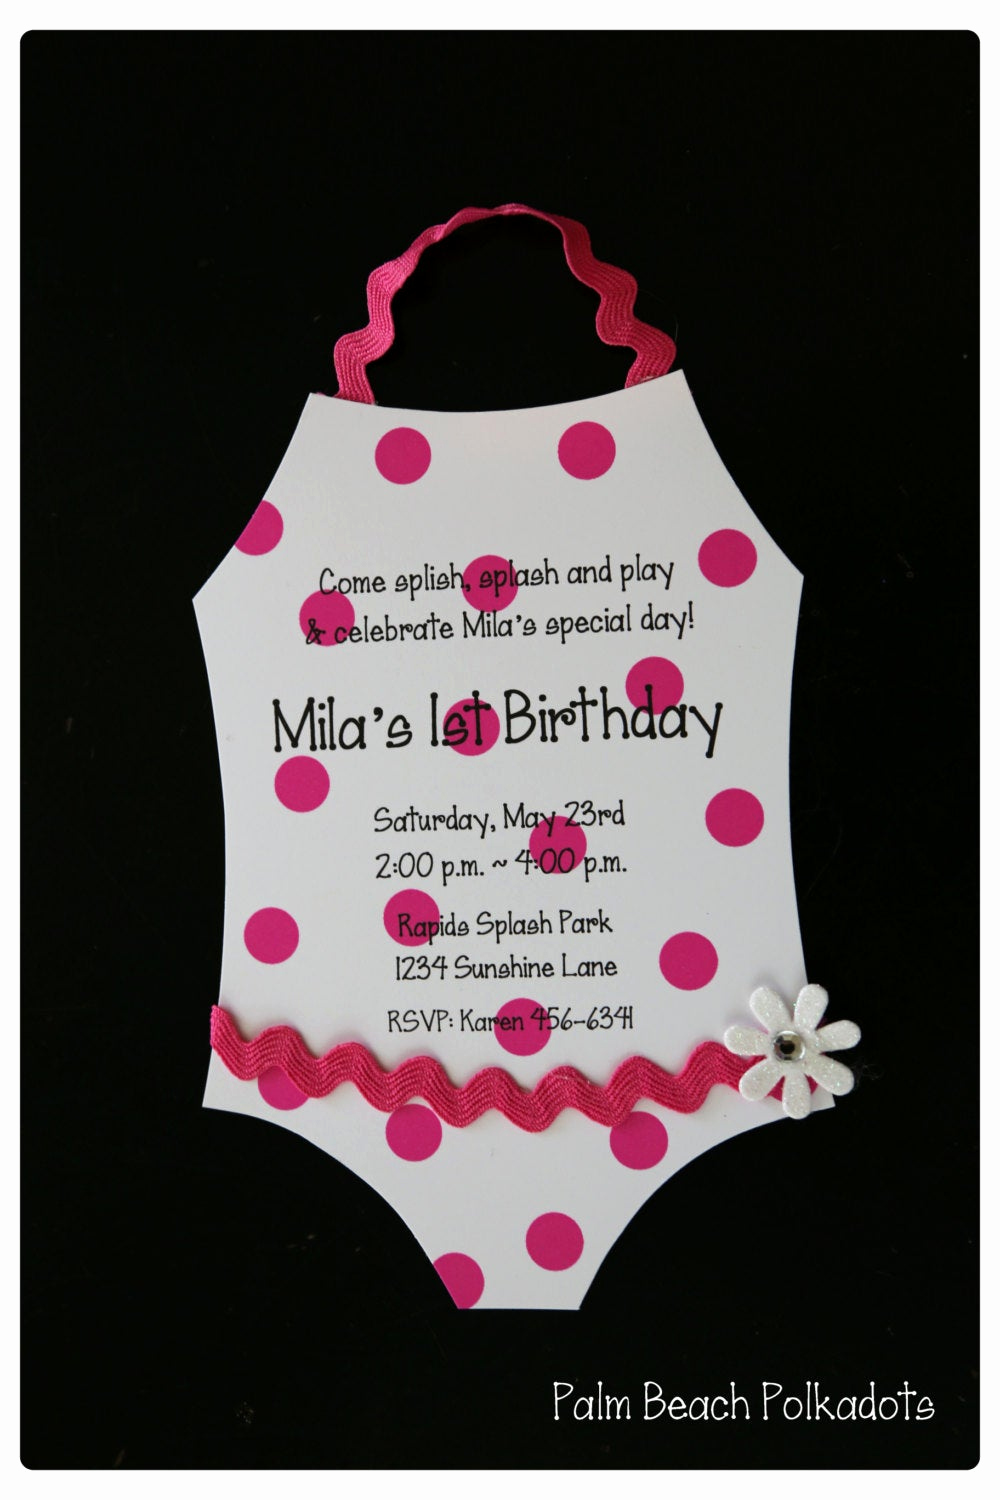 Bring Your Swimsuit Invitation Inspirational 10 Swimsuit Bathing Suit Birthday Invitations for Pool Party